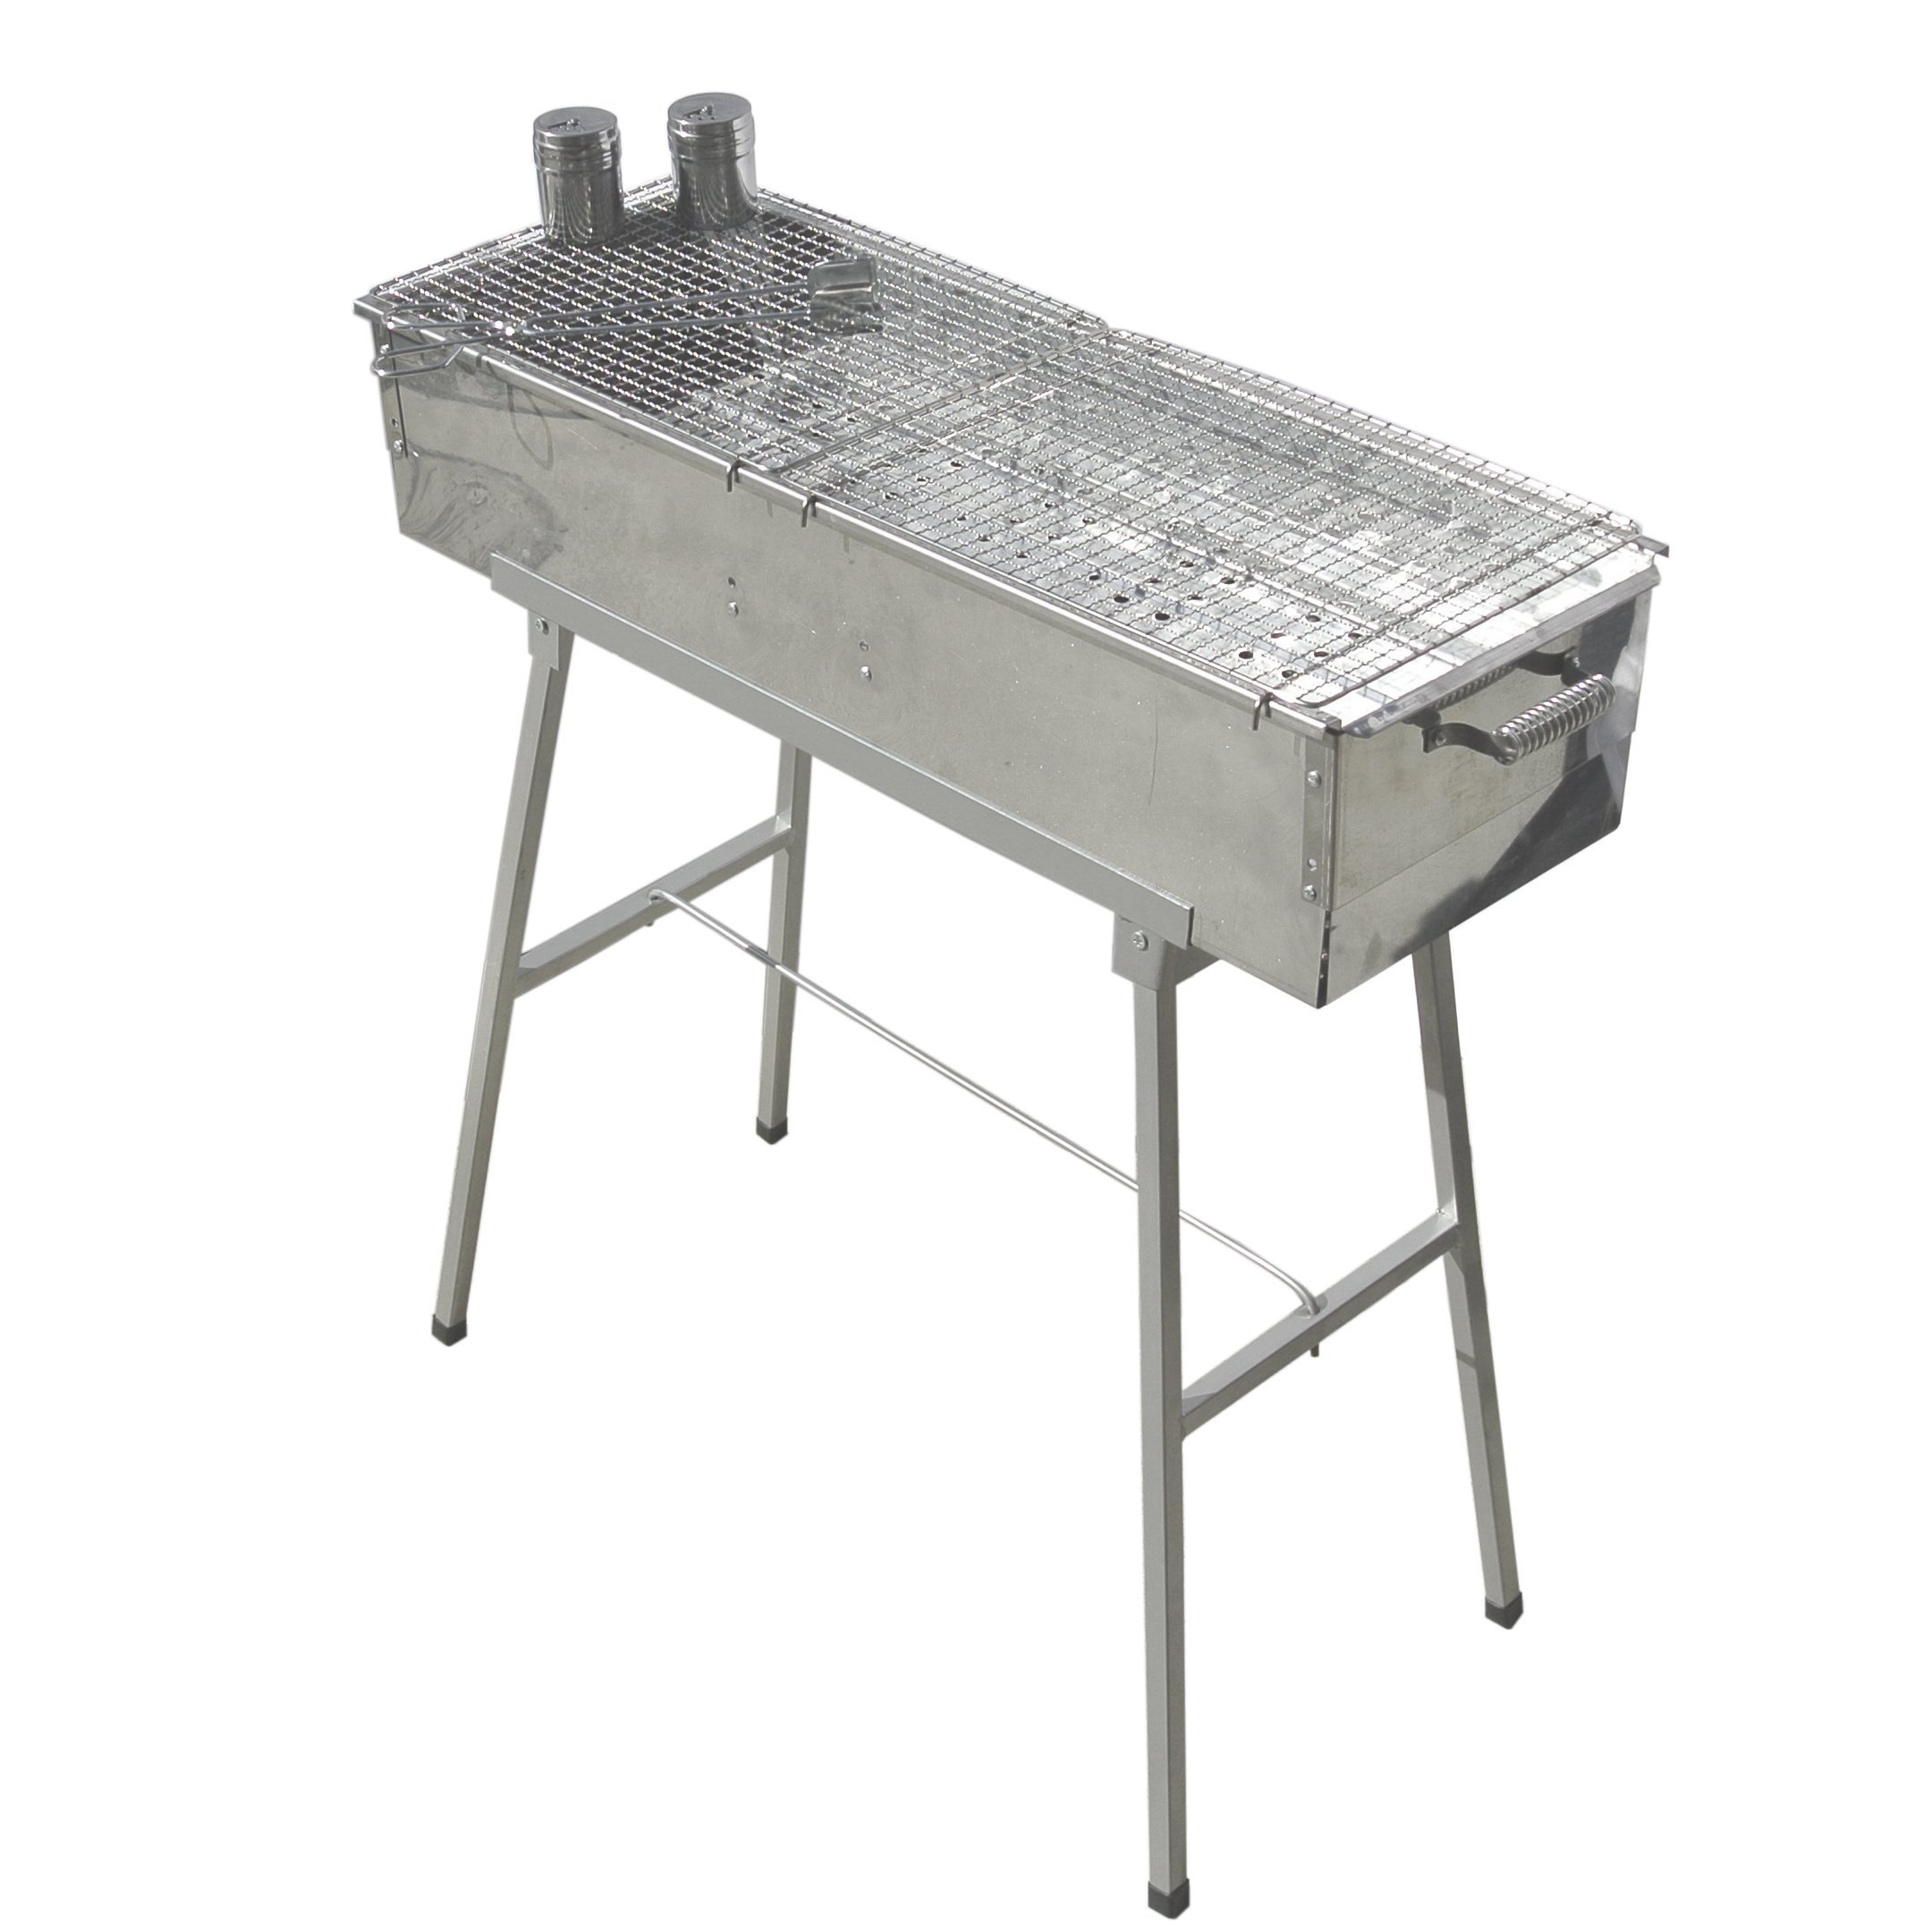 Party Griller 32'' x 11'' Stainless Steel Charcoal Barbecue Grill w/ 2x Stainless Steel Mesh Grate - Portable BBQ Kebab, Satay, Yakitori Grill. Makes Juicy Shish Kebob, Shashlik, Spiedini on the Skewer by Party Griller